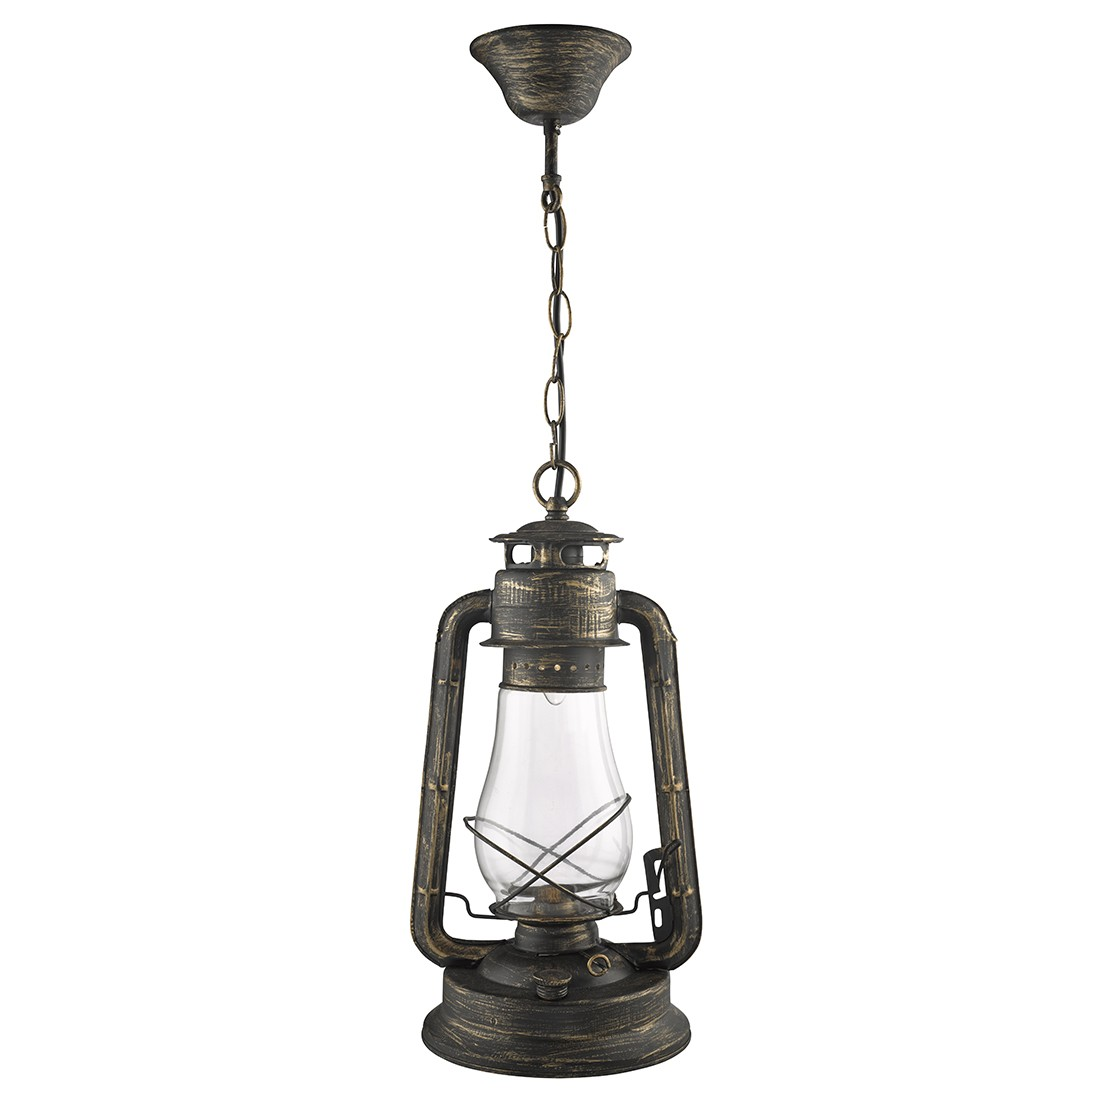 Hurricane Lantern Pendant Light In Black Gold With Clear Funnel Glass 4842 1bg Stanways Stoves And Lights